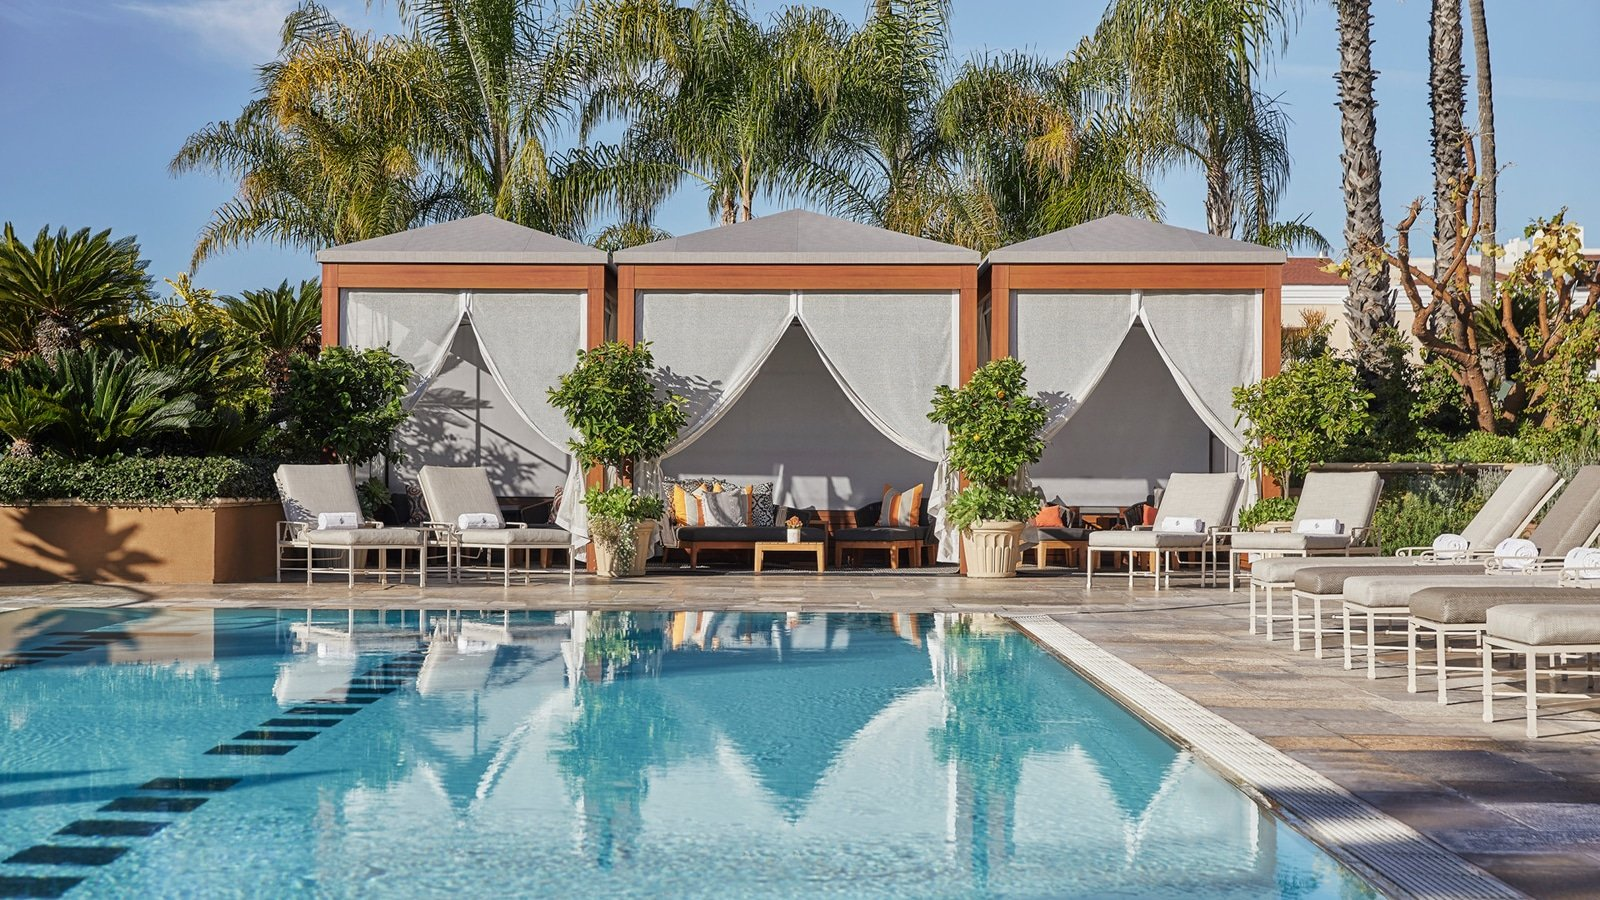 9 Best Hotels in Los Angeles - Traveling With Kids | La